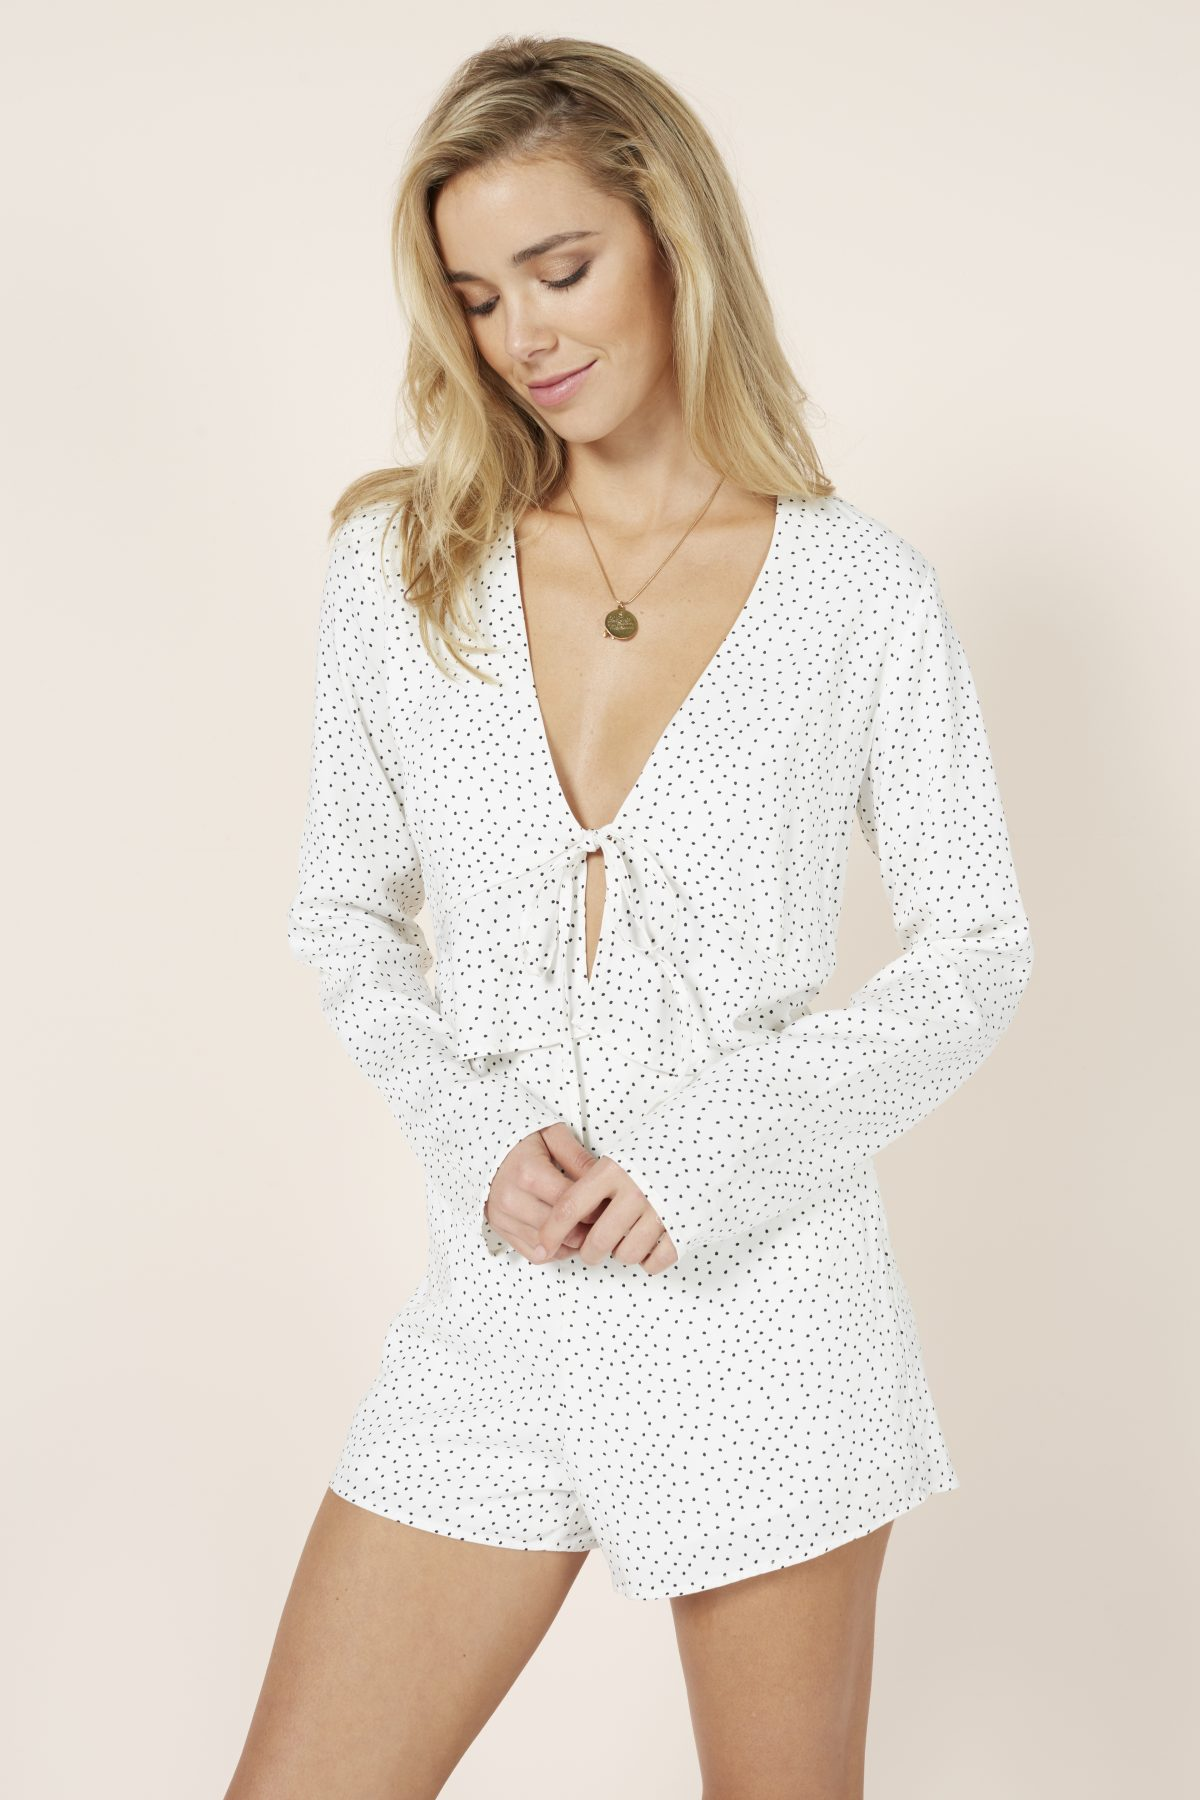 Polka Dot Frill Playsuit - Lunacy Boutique Mad About Fashion